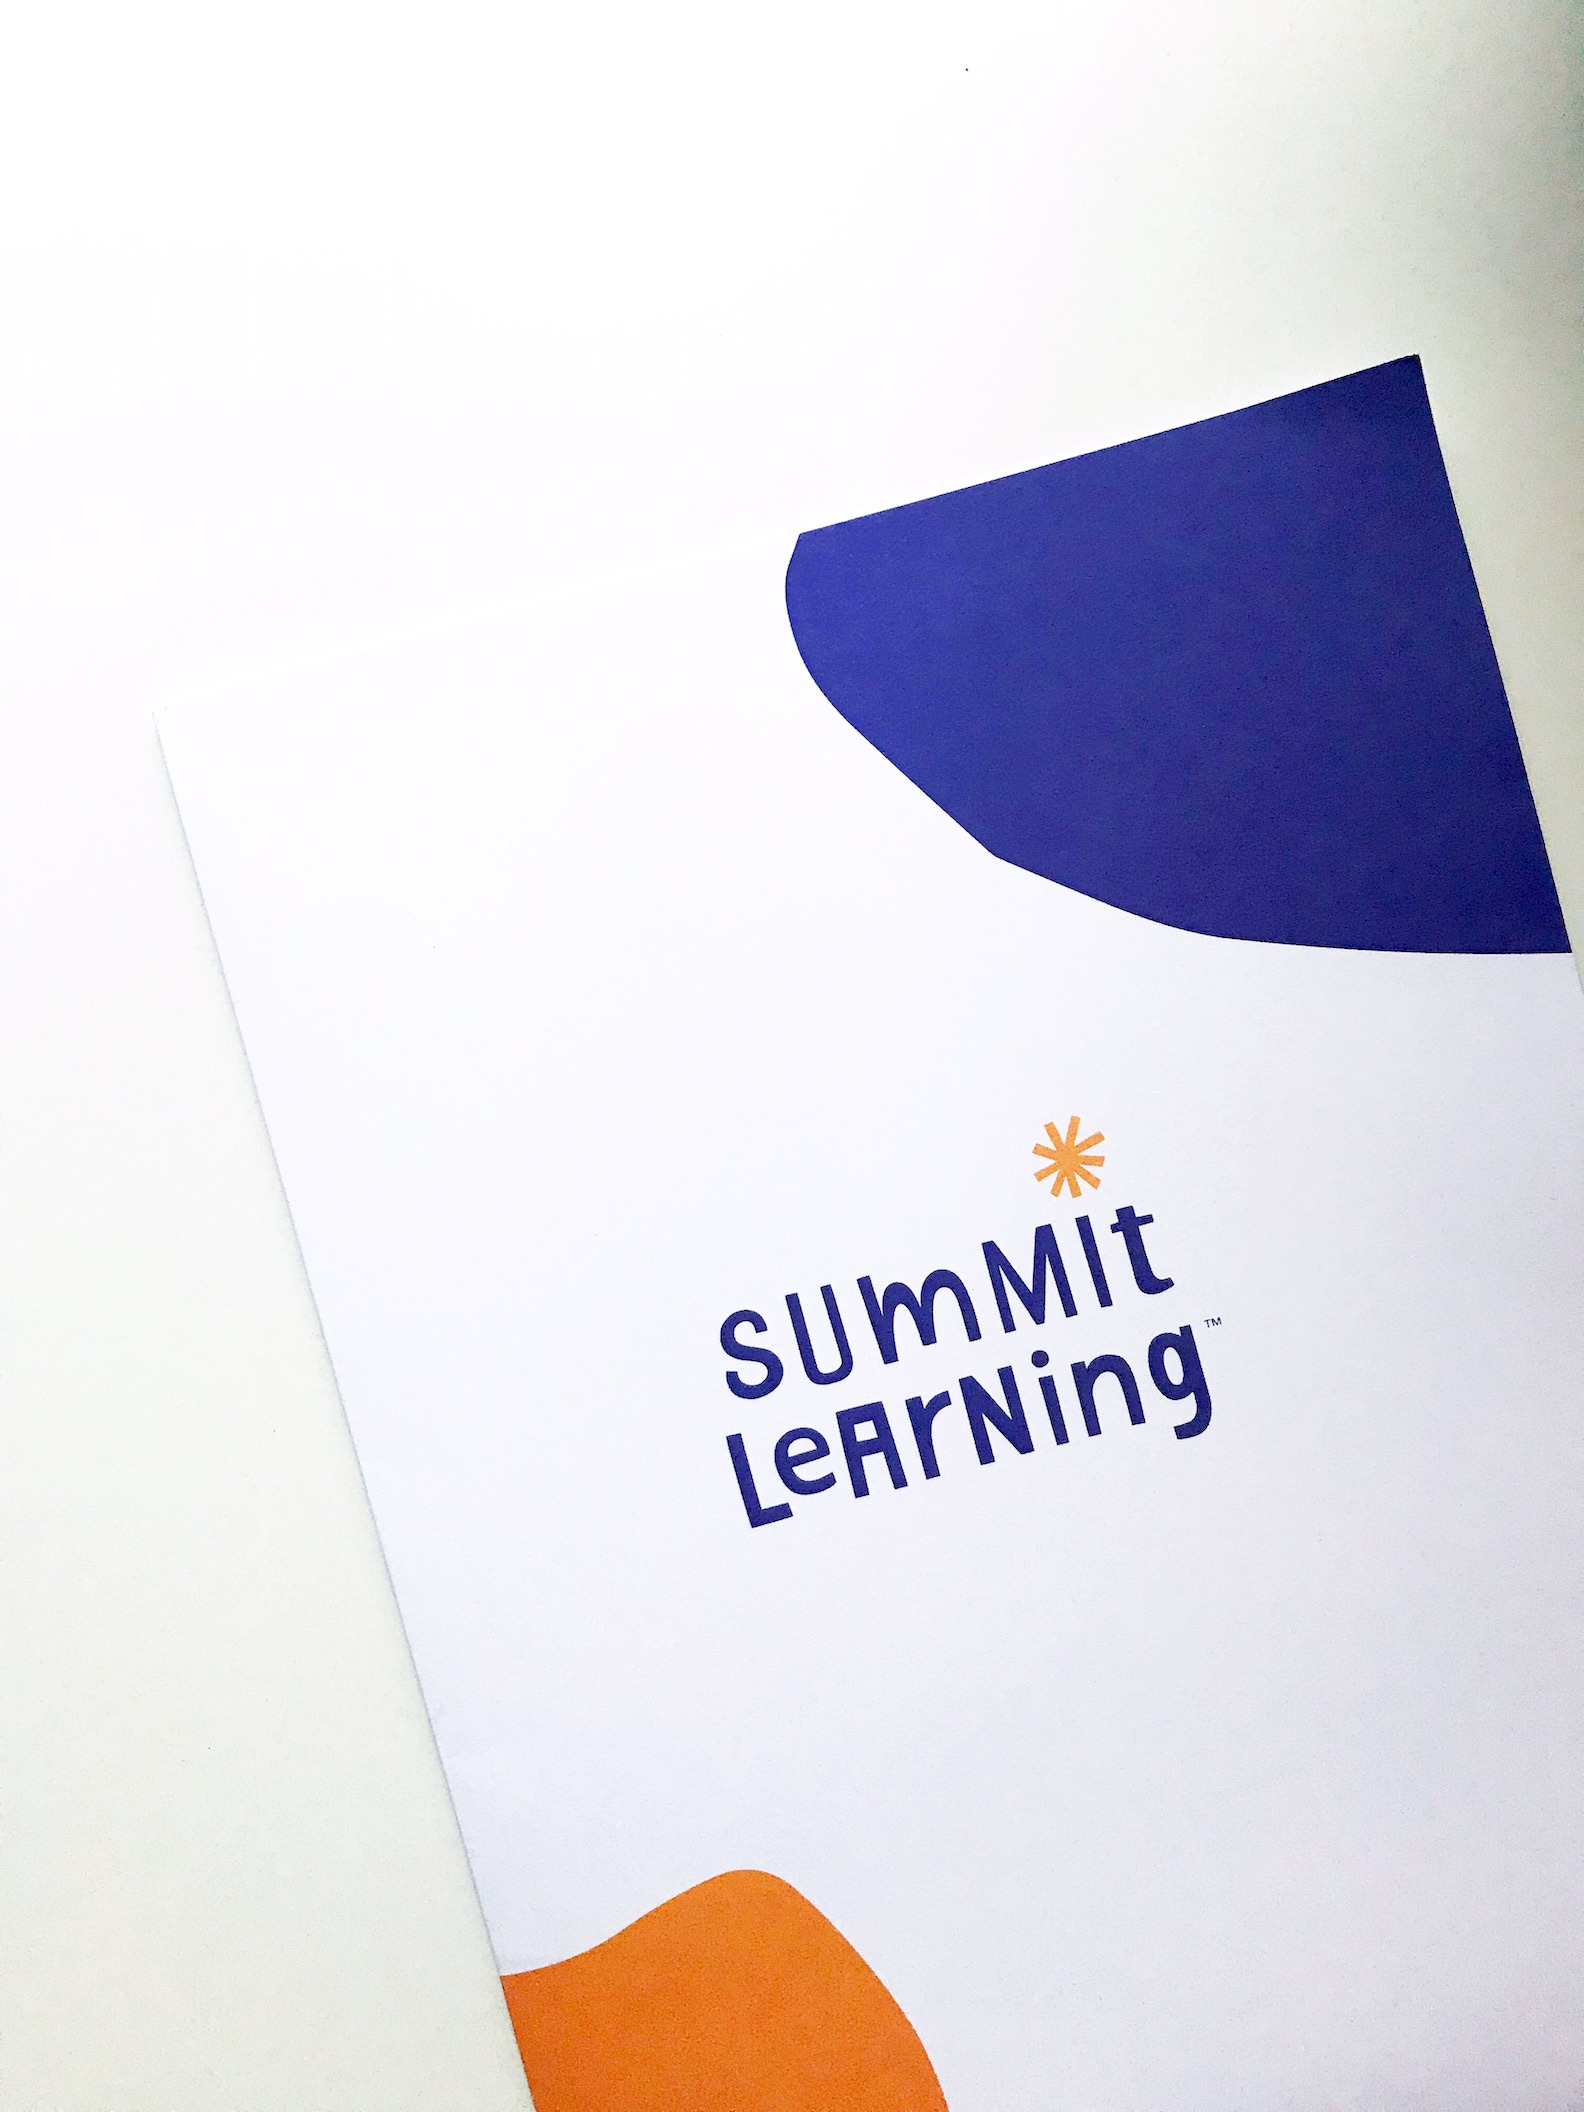 Creating a future for everyone. - Our team at Chan Zuckerberg Initiative is working on the Summit Learning Platform, a free online tool that empowers teachers to customize instruction to meet the needs of each student and for students to learn at their own pace.____Coming soon